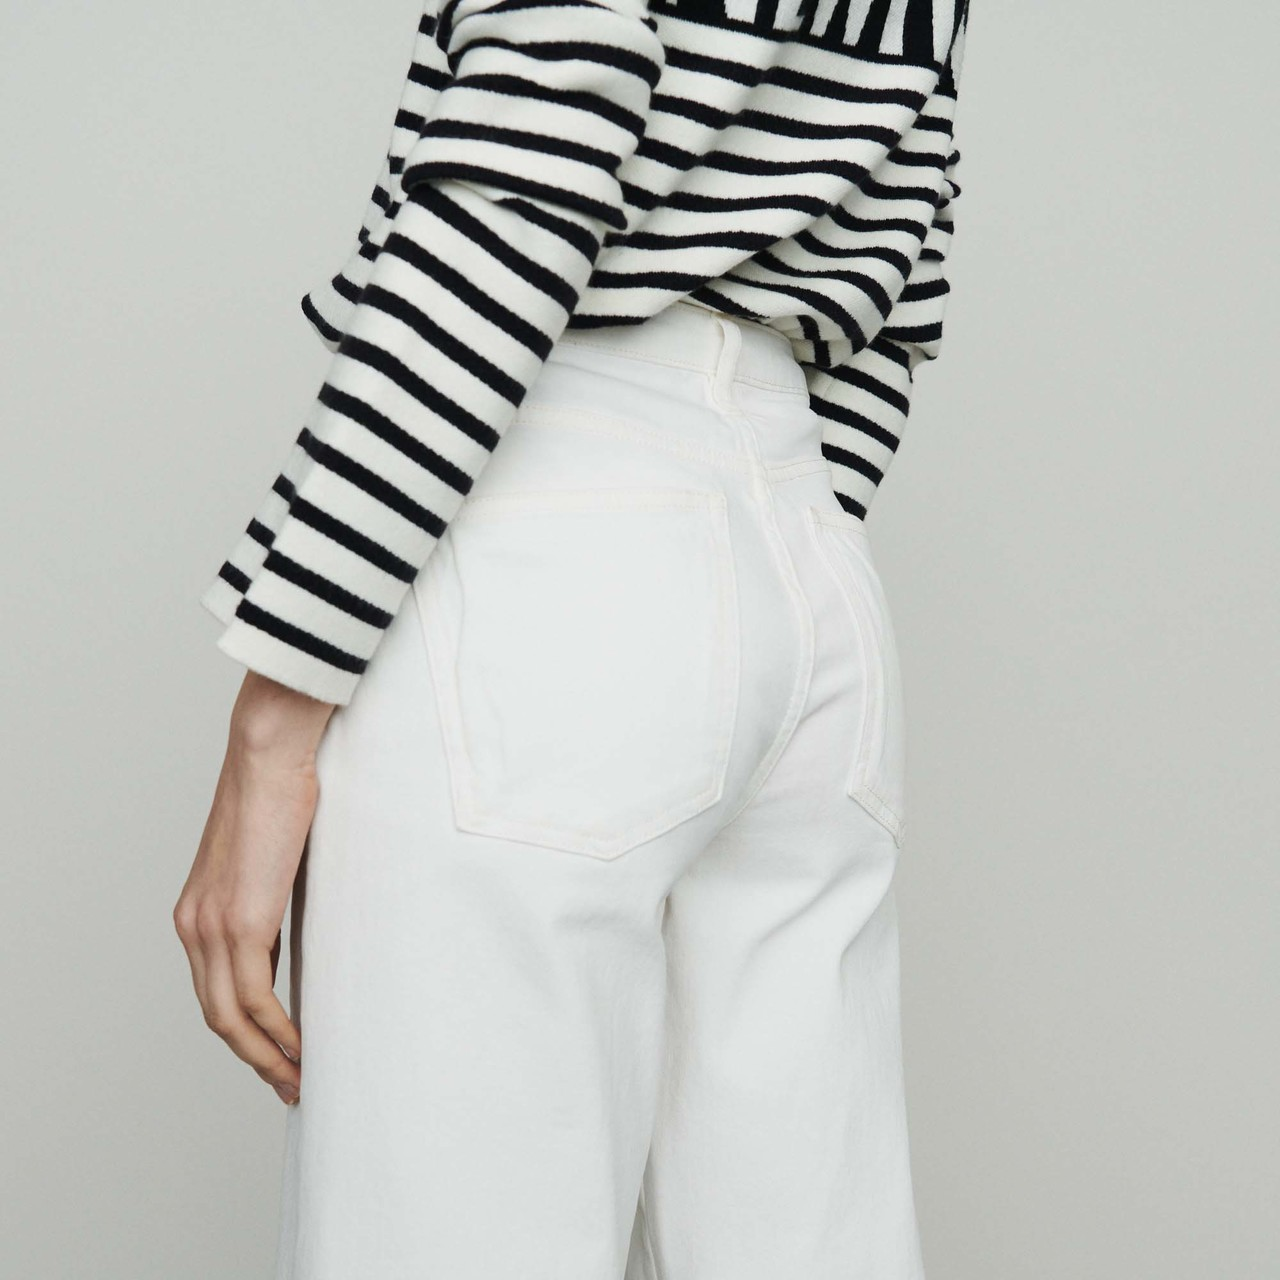 High-Waisted Wide Leg Jeans - White